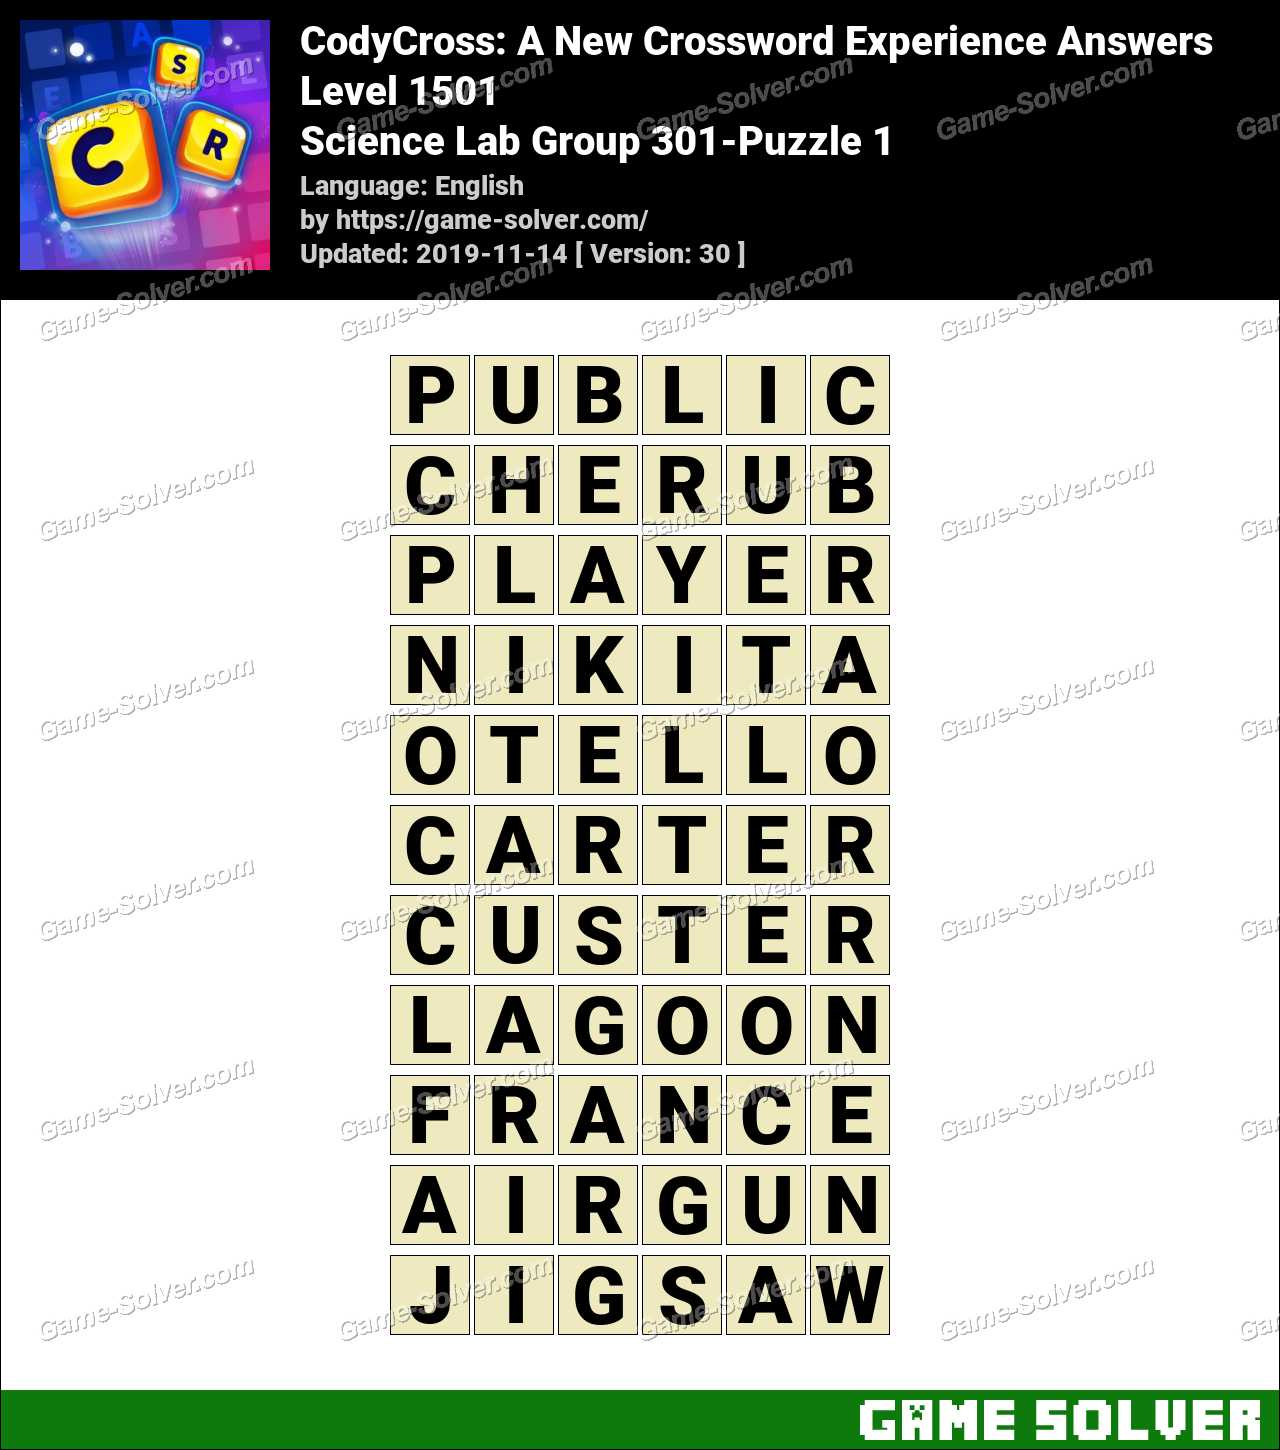 CodyCross Science Lab Group 301-Puzzle 1 Answers